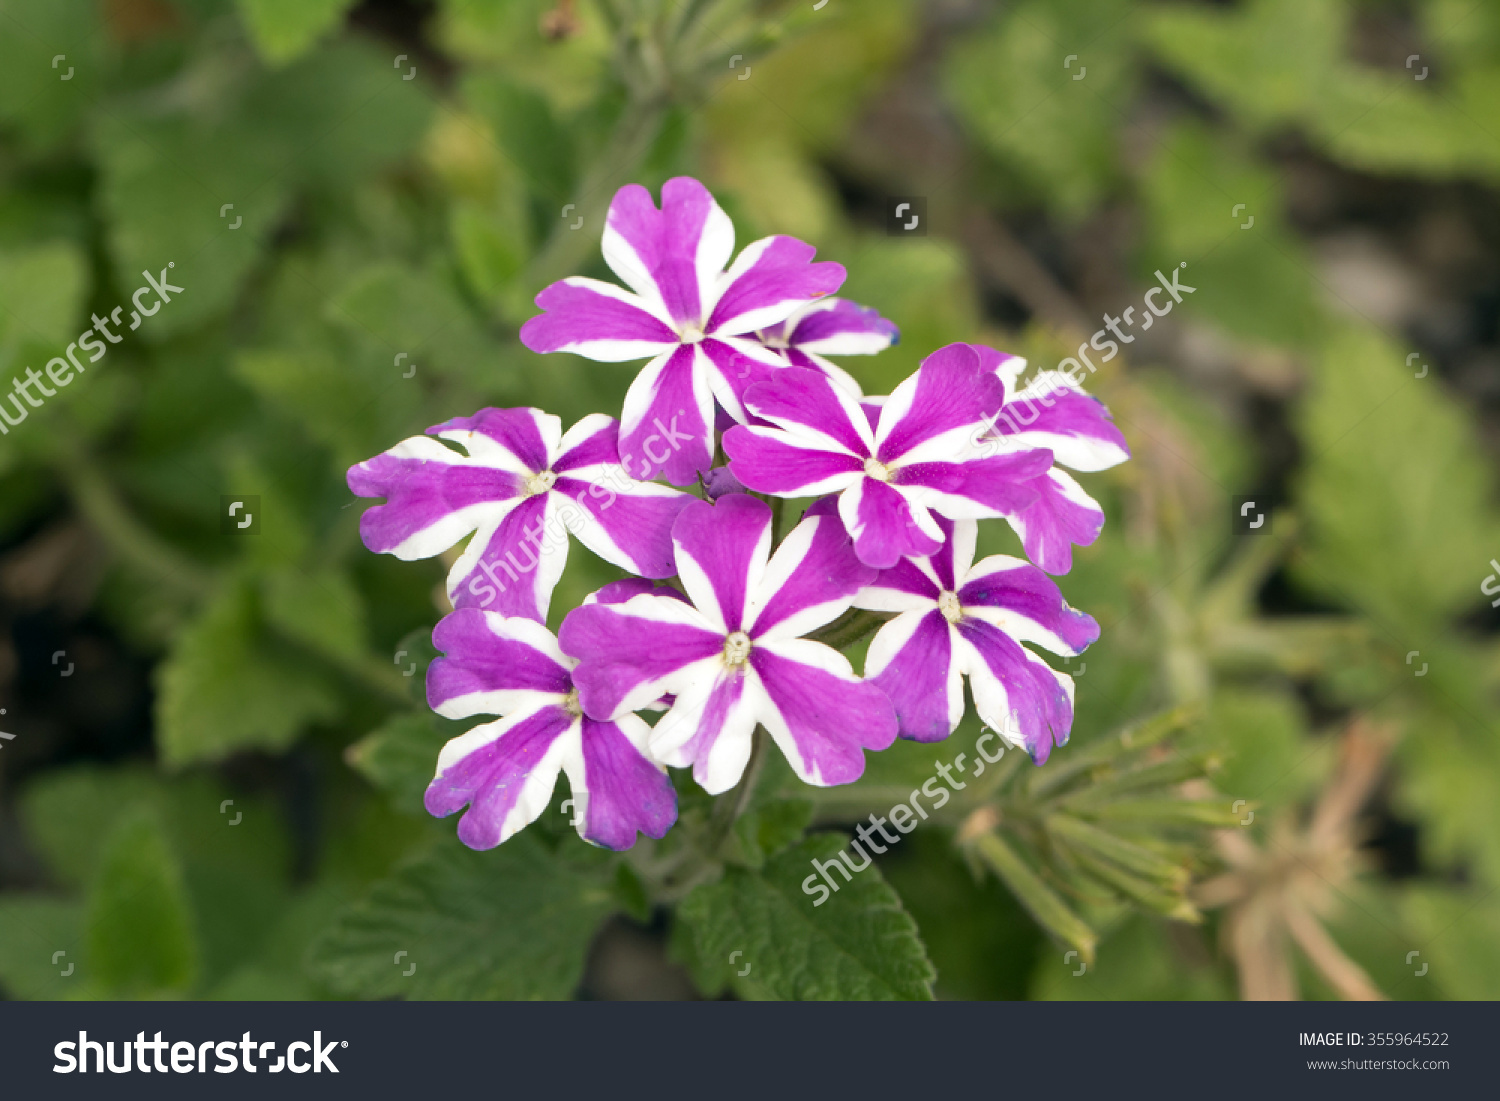 Purple And White Garden Verbena Blooming (Verbena Tenera) Stock.